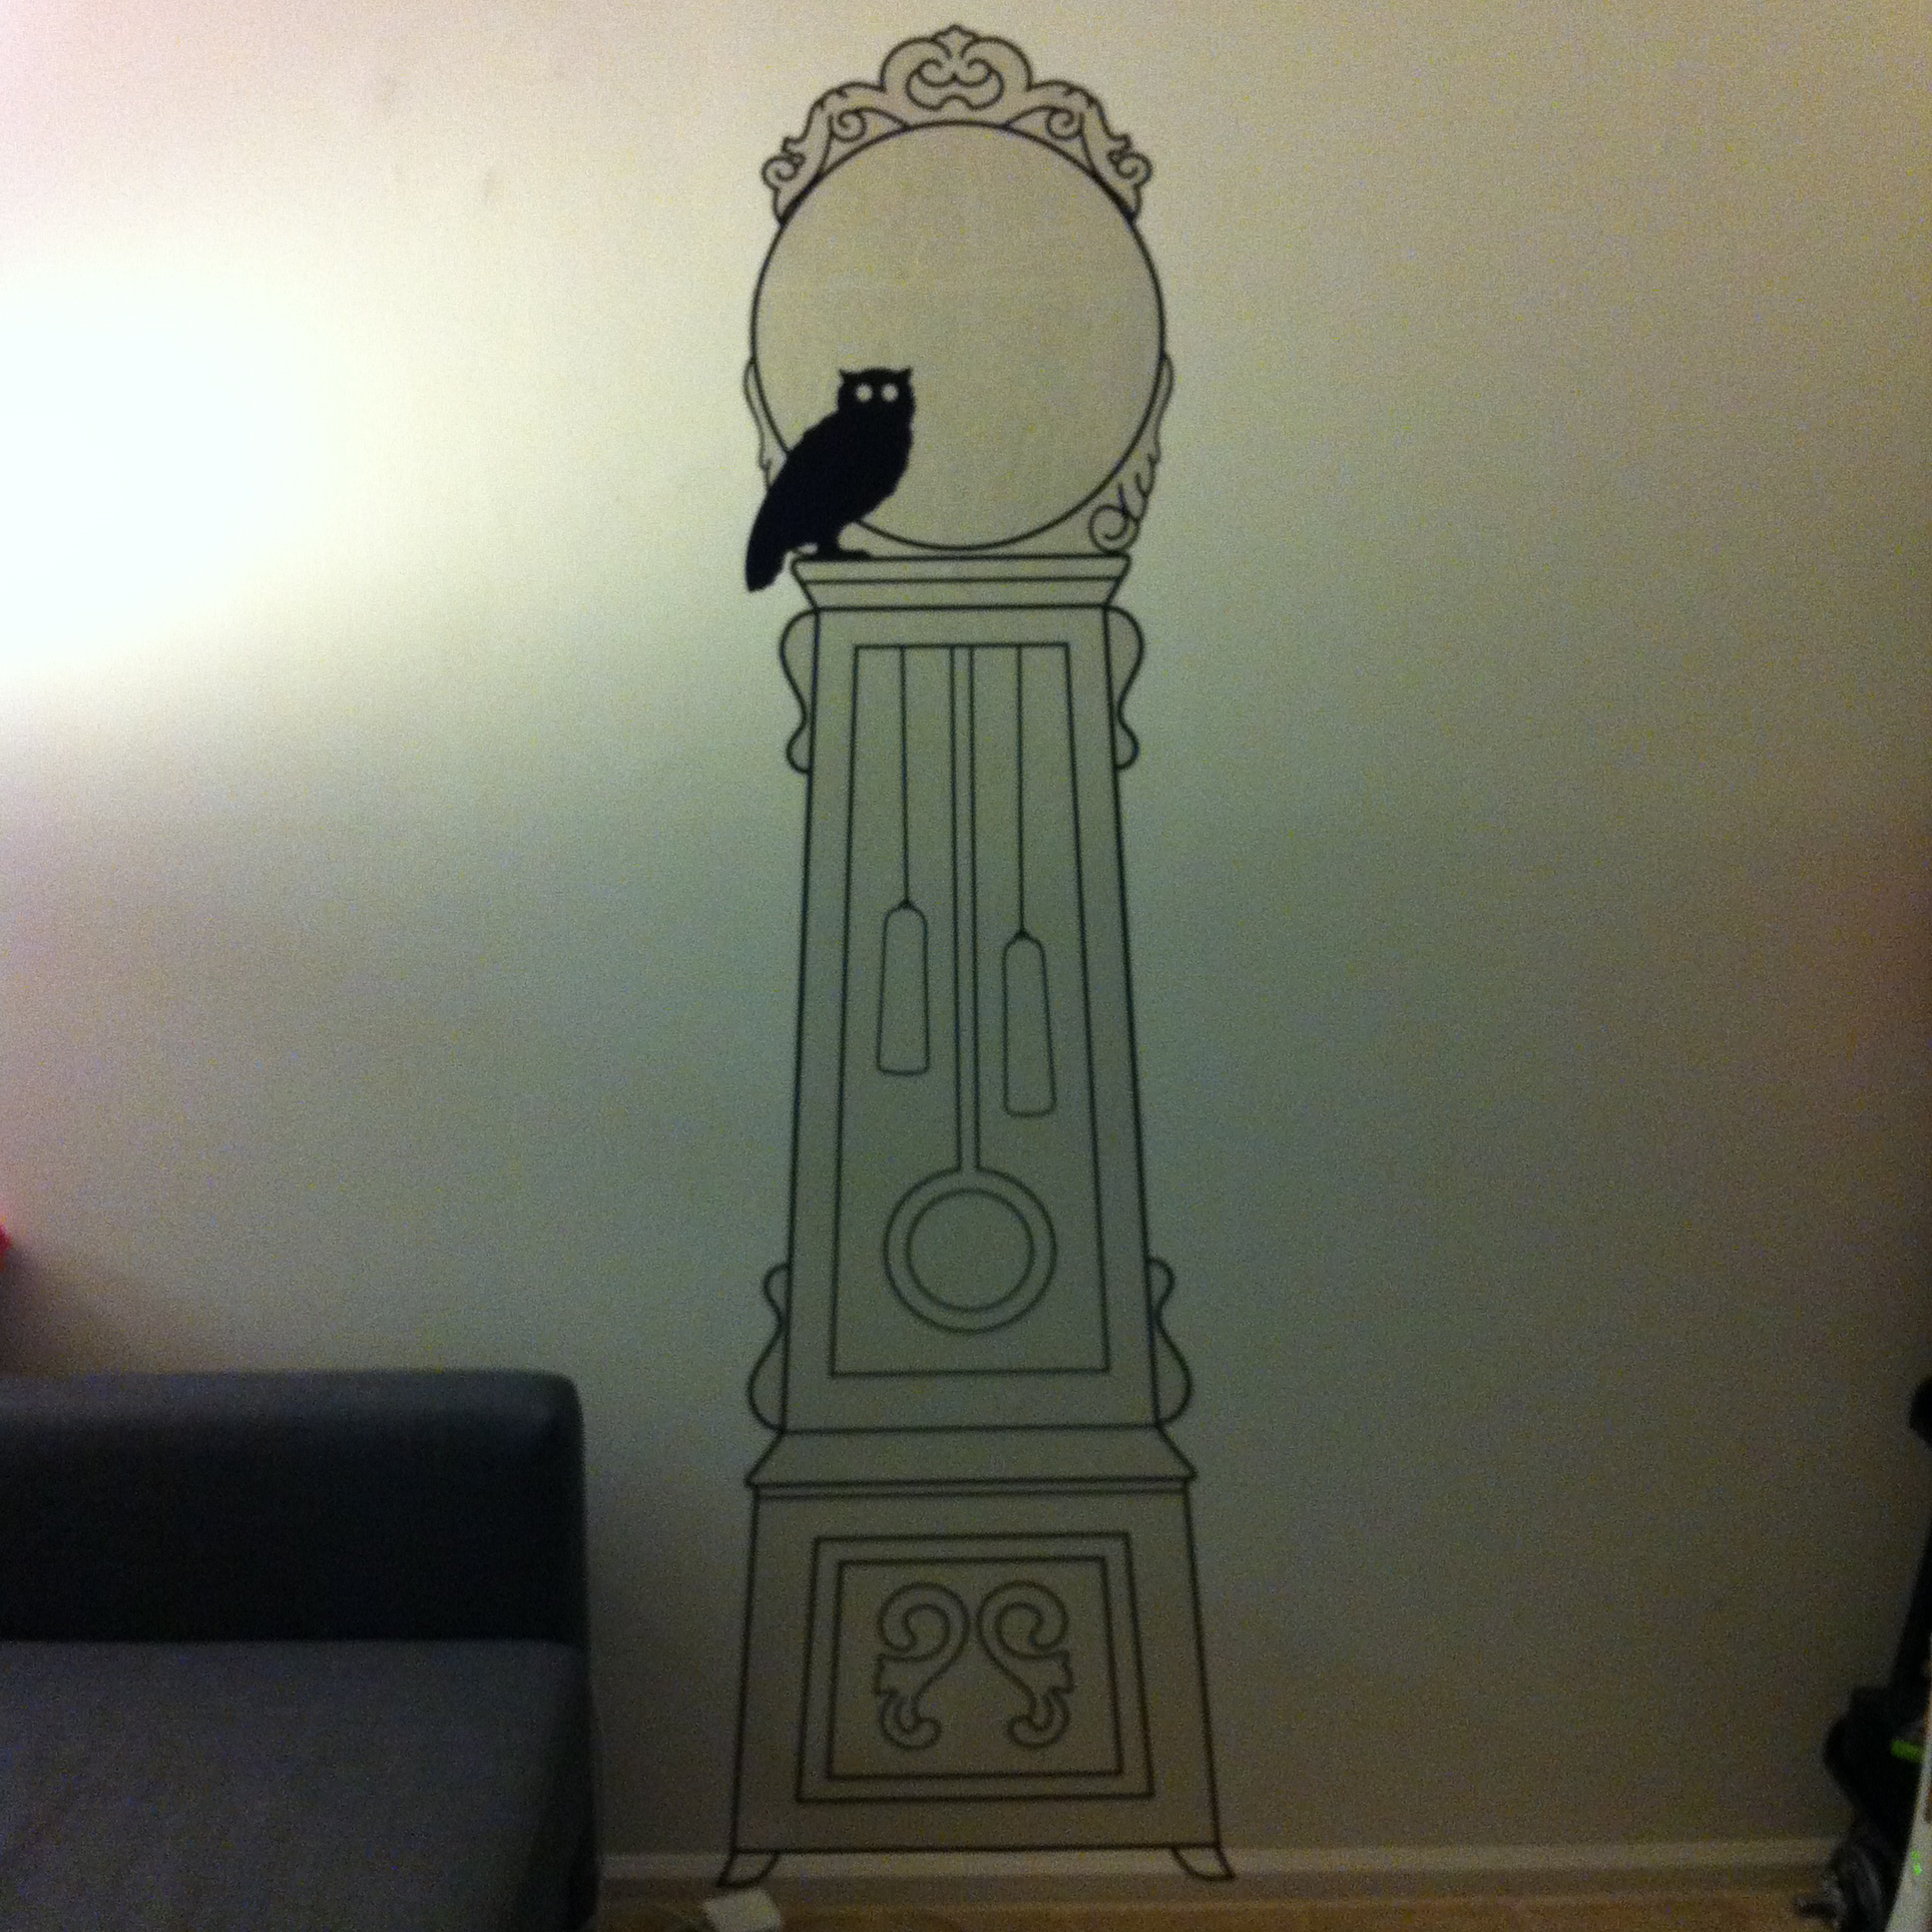 Wall Art Decals Clock : The art of wall sticker late night crafters